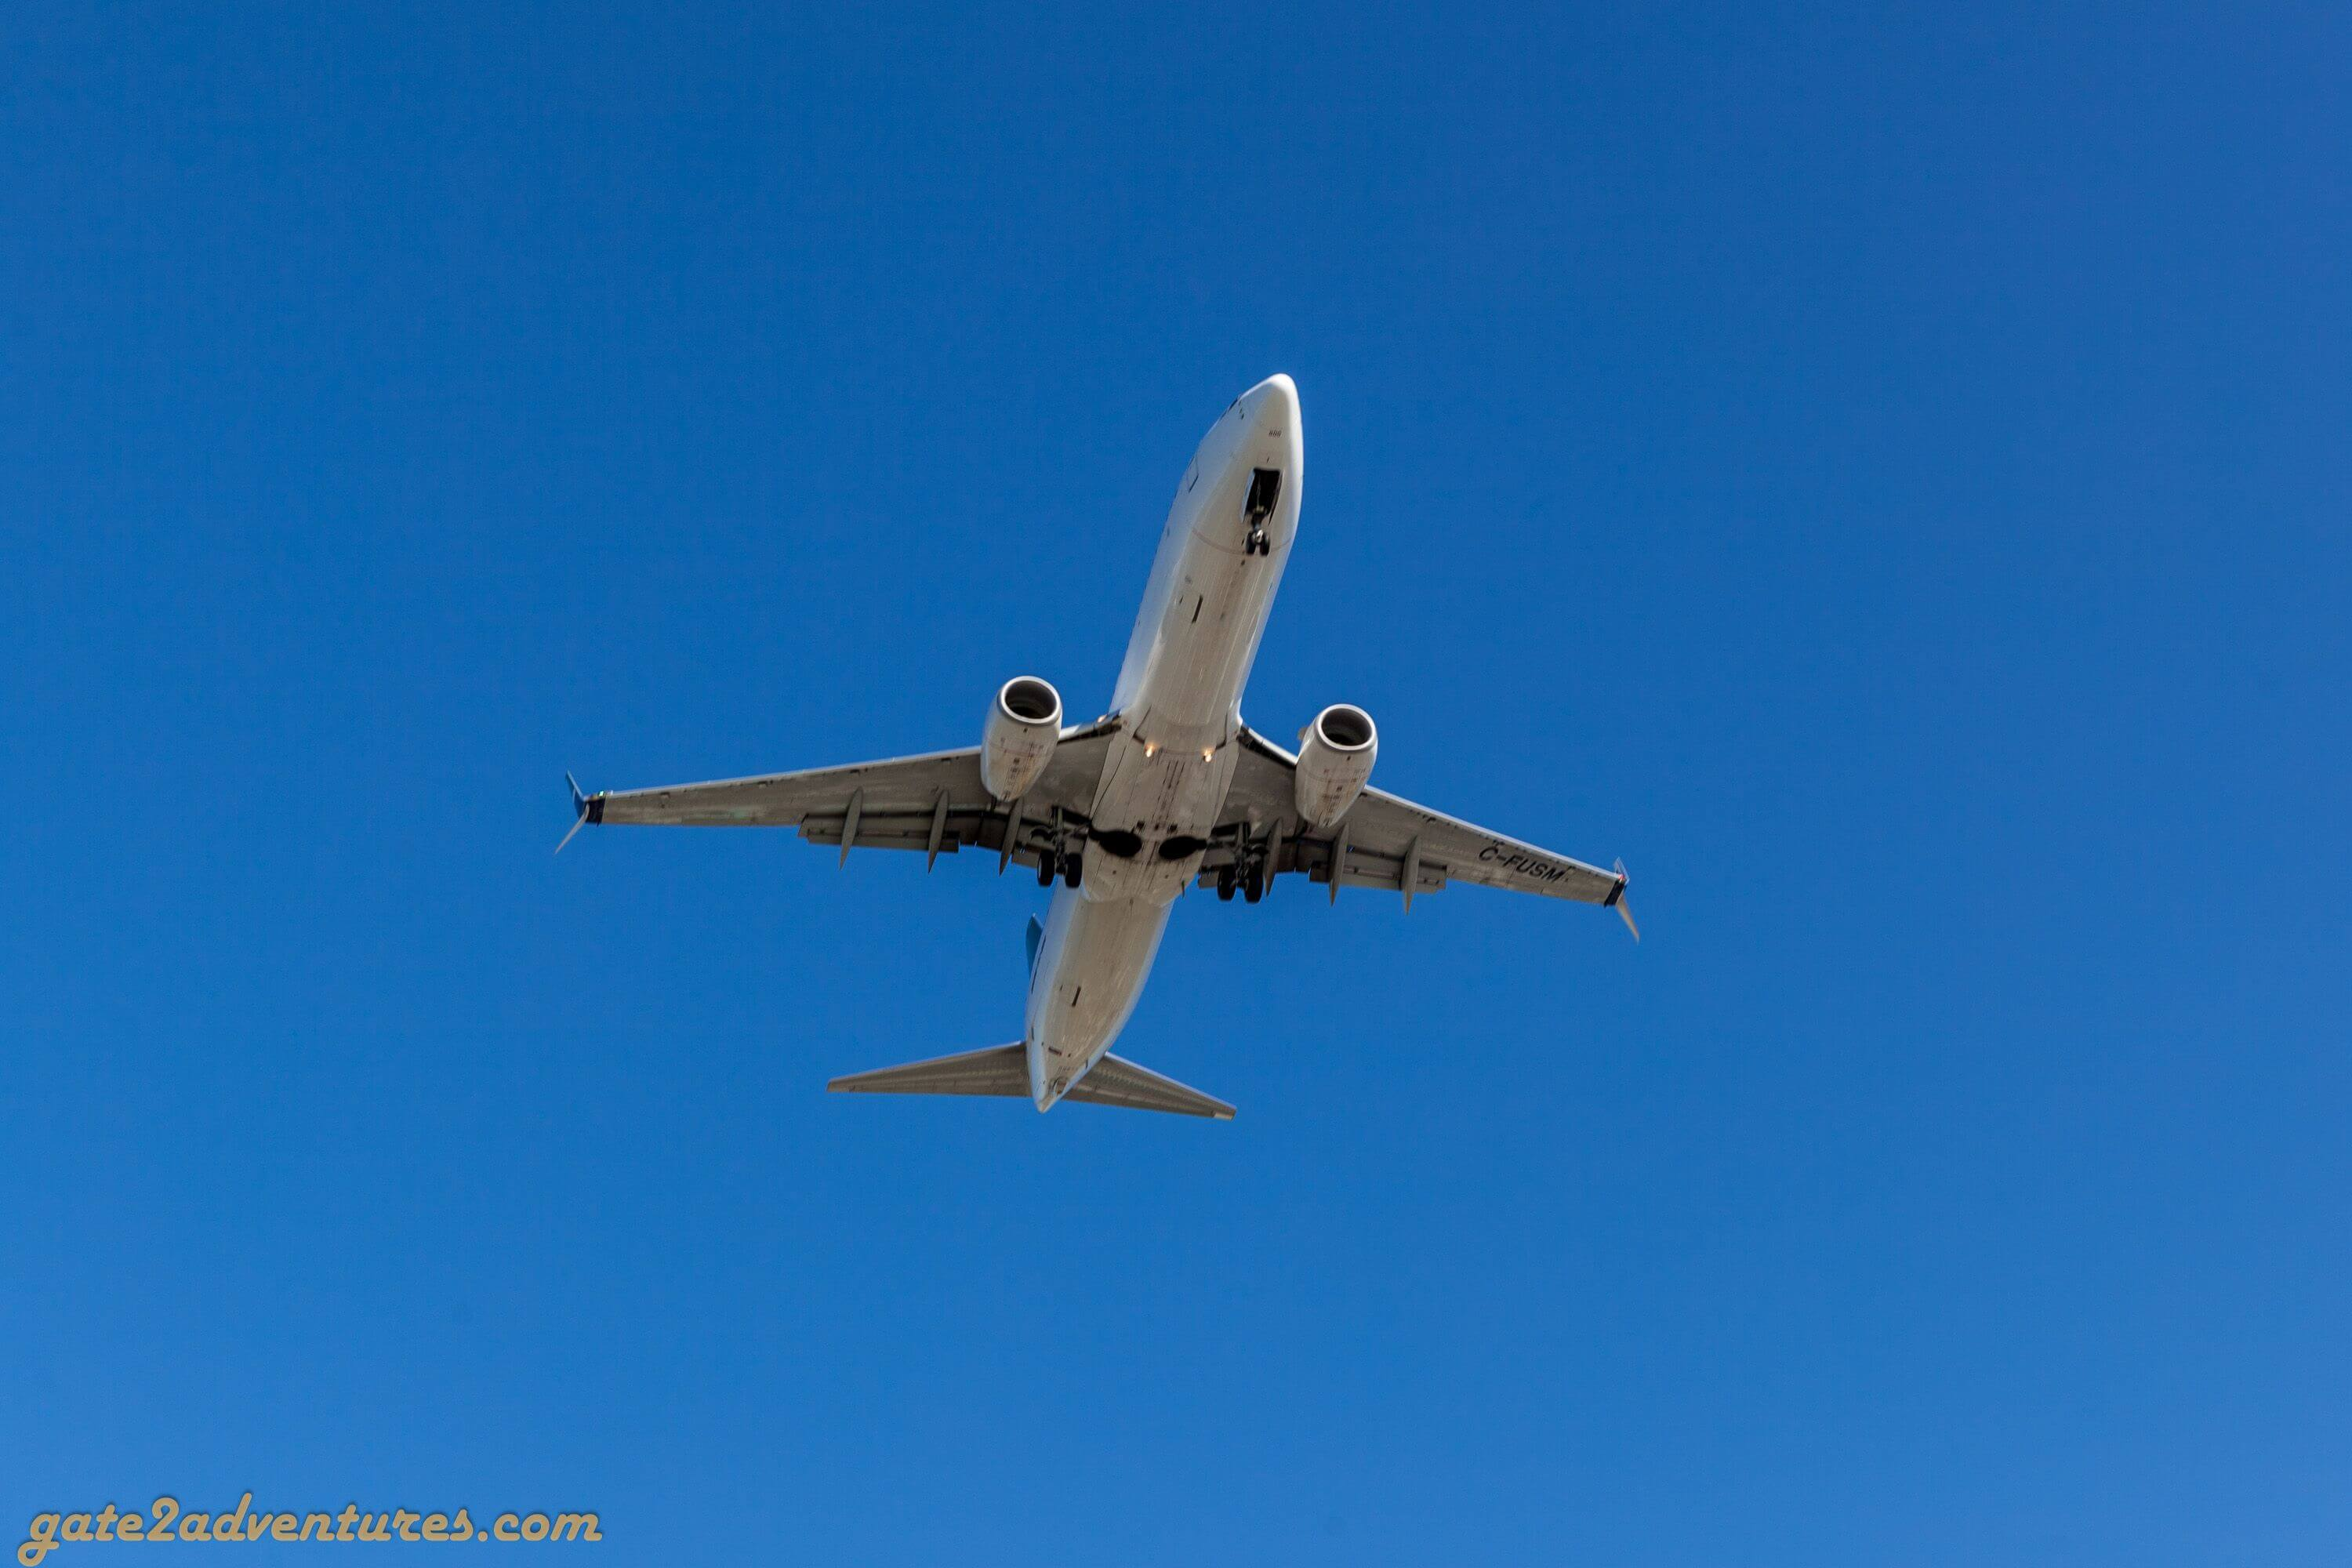 Planes coming in over your head while approaching runway 26R